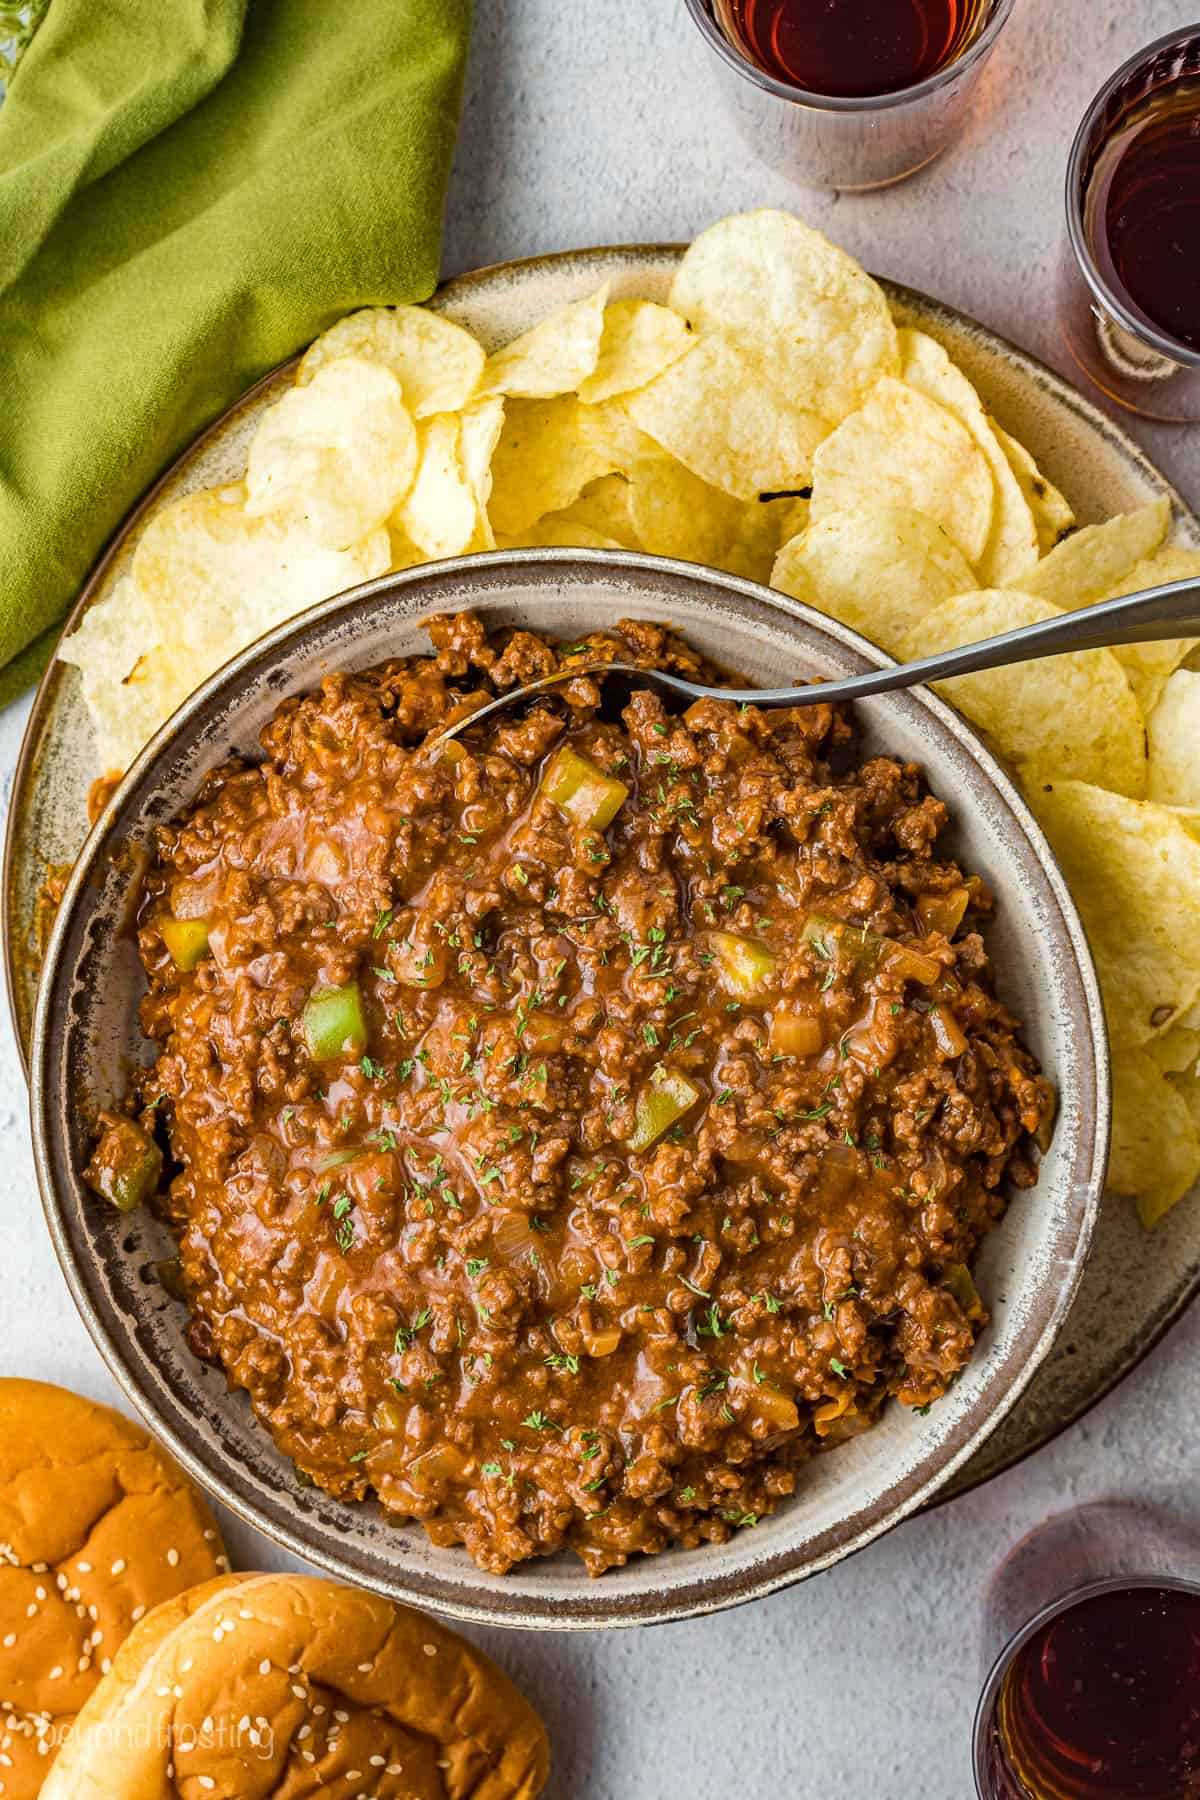 A skillet full of the finished Sloppy Joe meat.